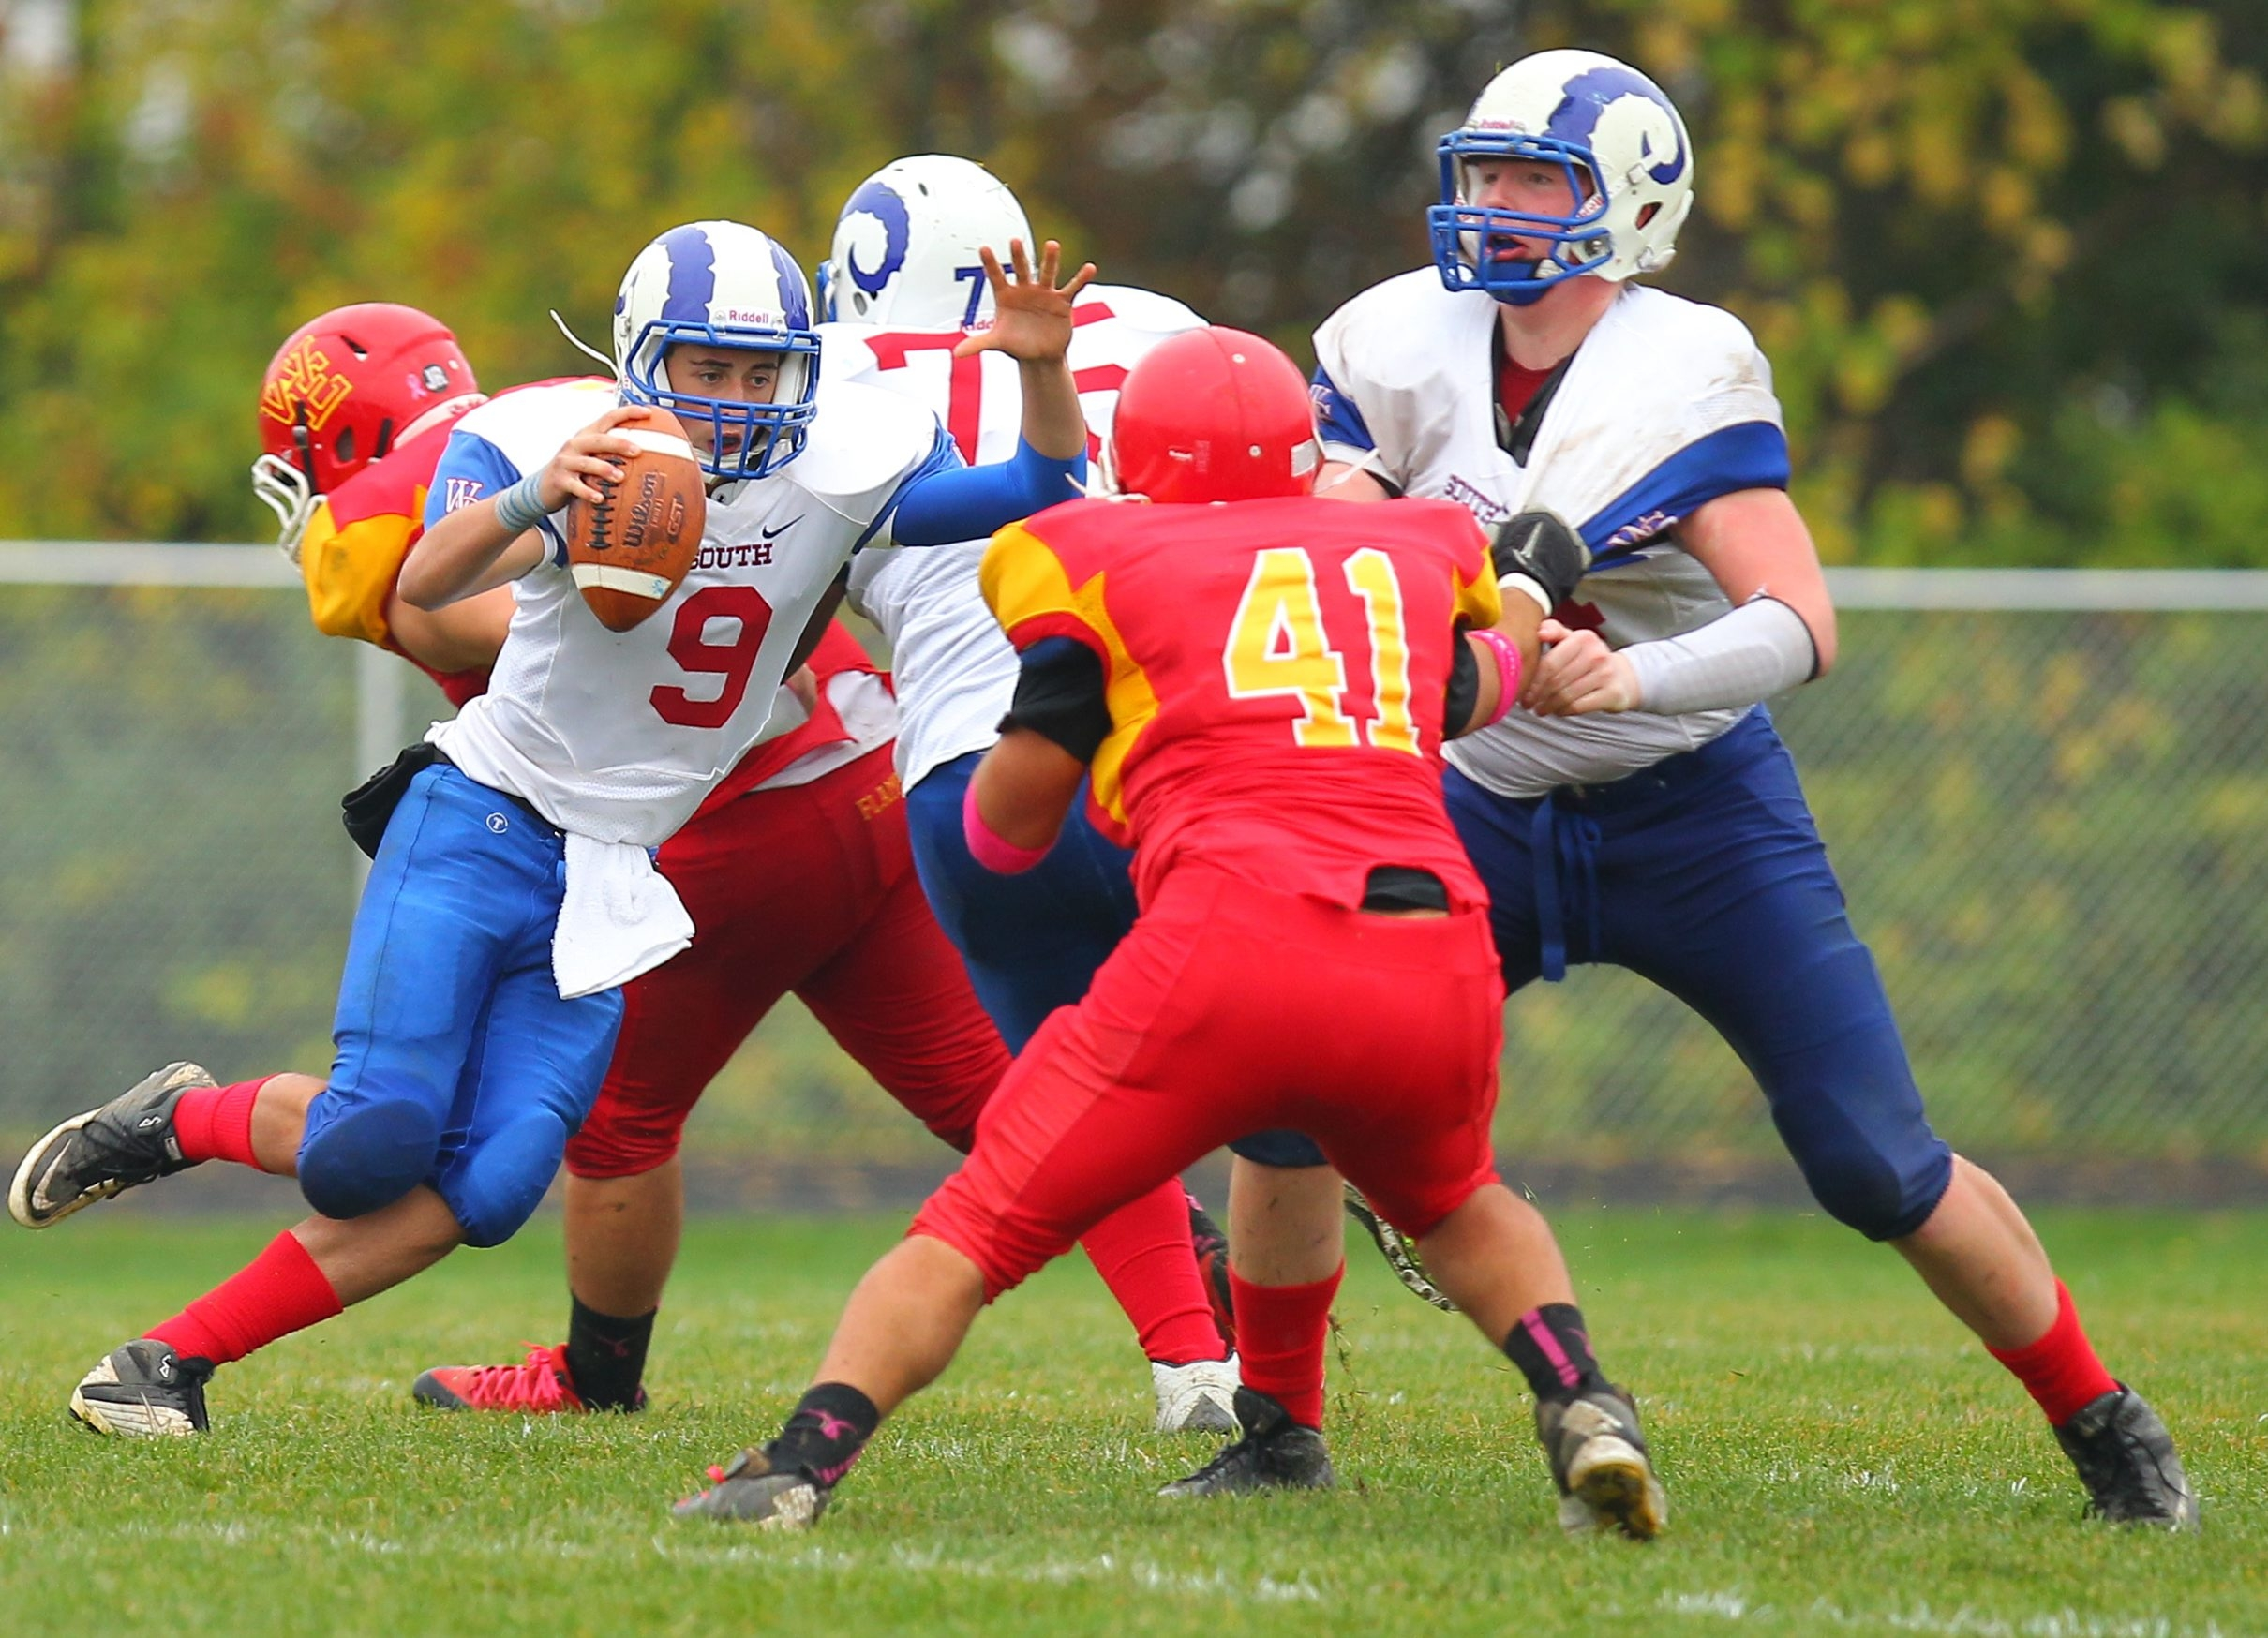 Williamsville South's Sam Castronova (9) tries to escape a collapsing pocket as Williamsville East's Mike Losi (41) closes in during South's 28-7 victory.